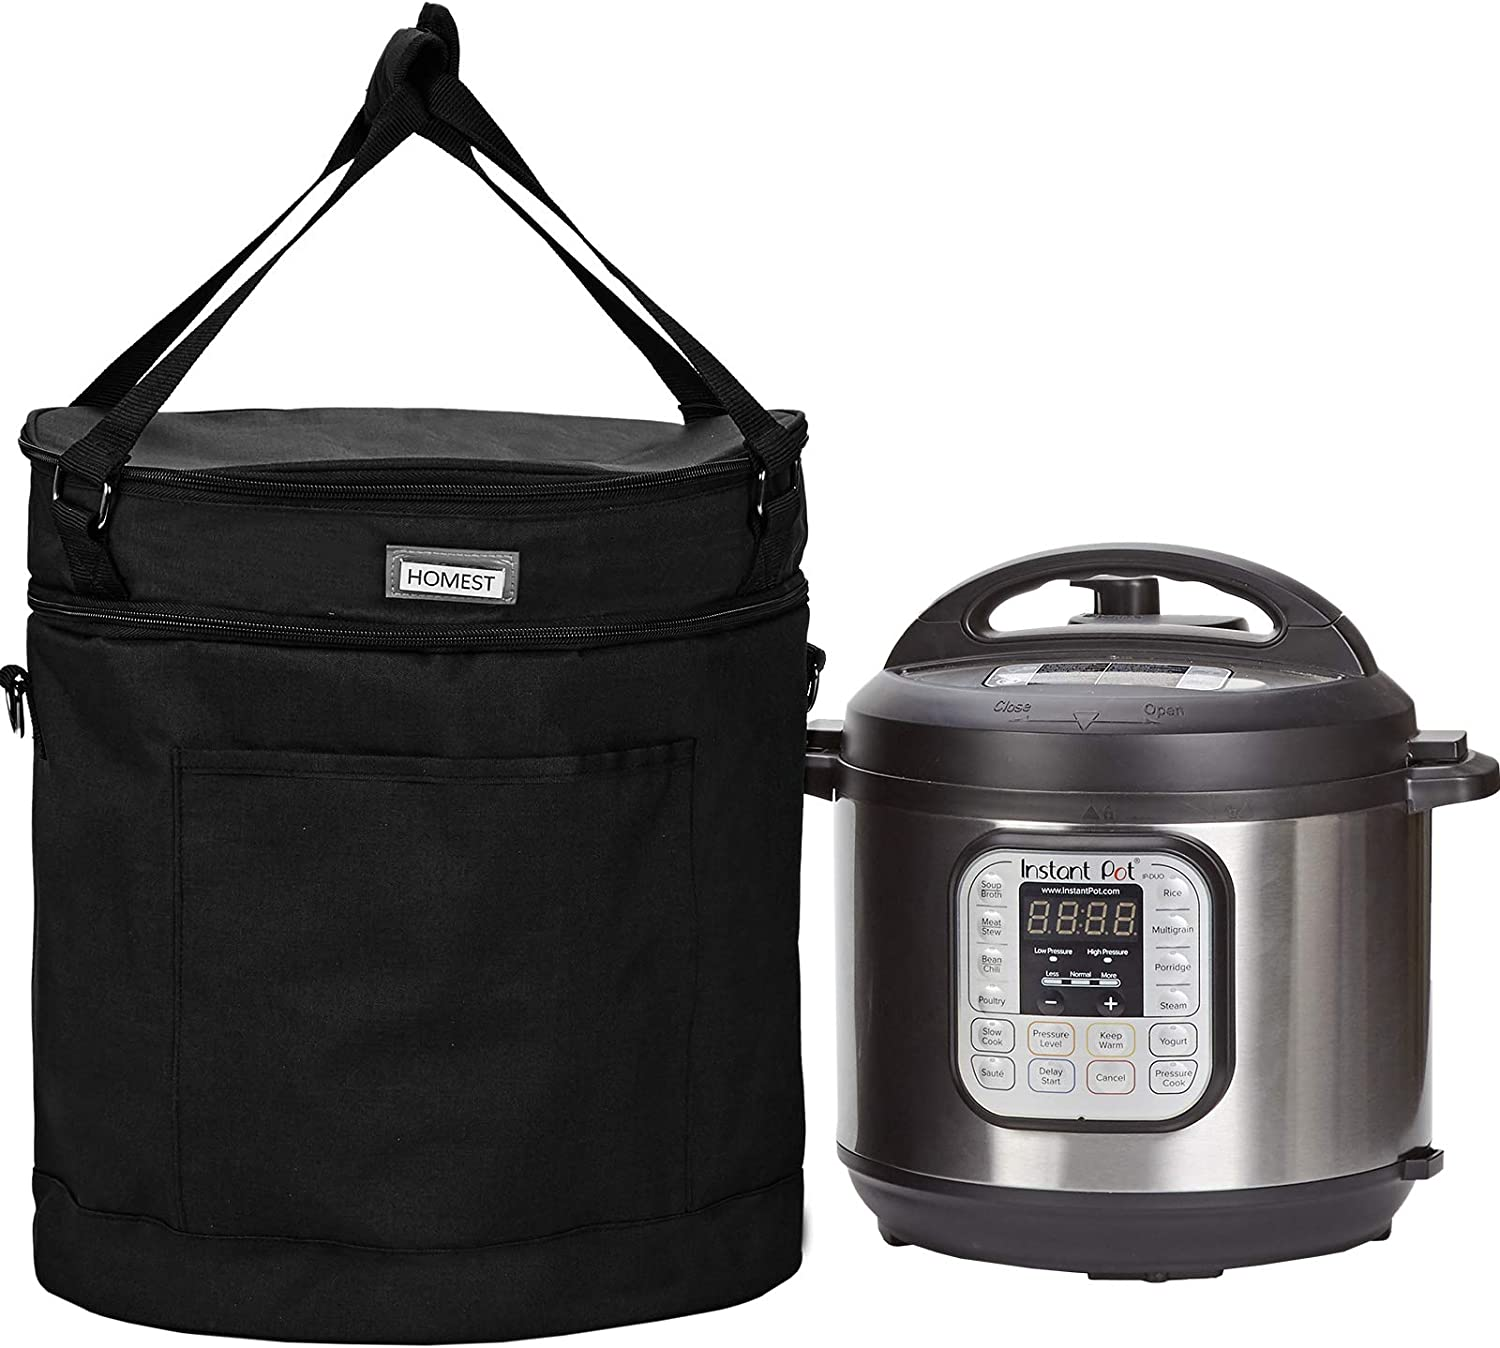 HOMEST 2 Compartments Carry Bag Compatible with 6 Quart Instant Pot, These Pressure Cooker Travel Tote Bag Have Accessory Pockets for Spoon, Measuring Cup, Steam Rack, Black